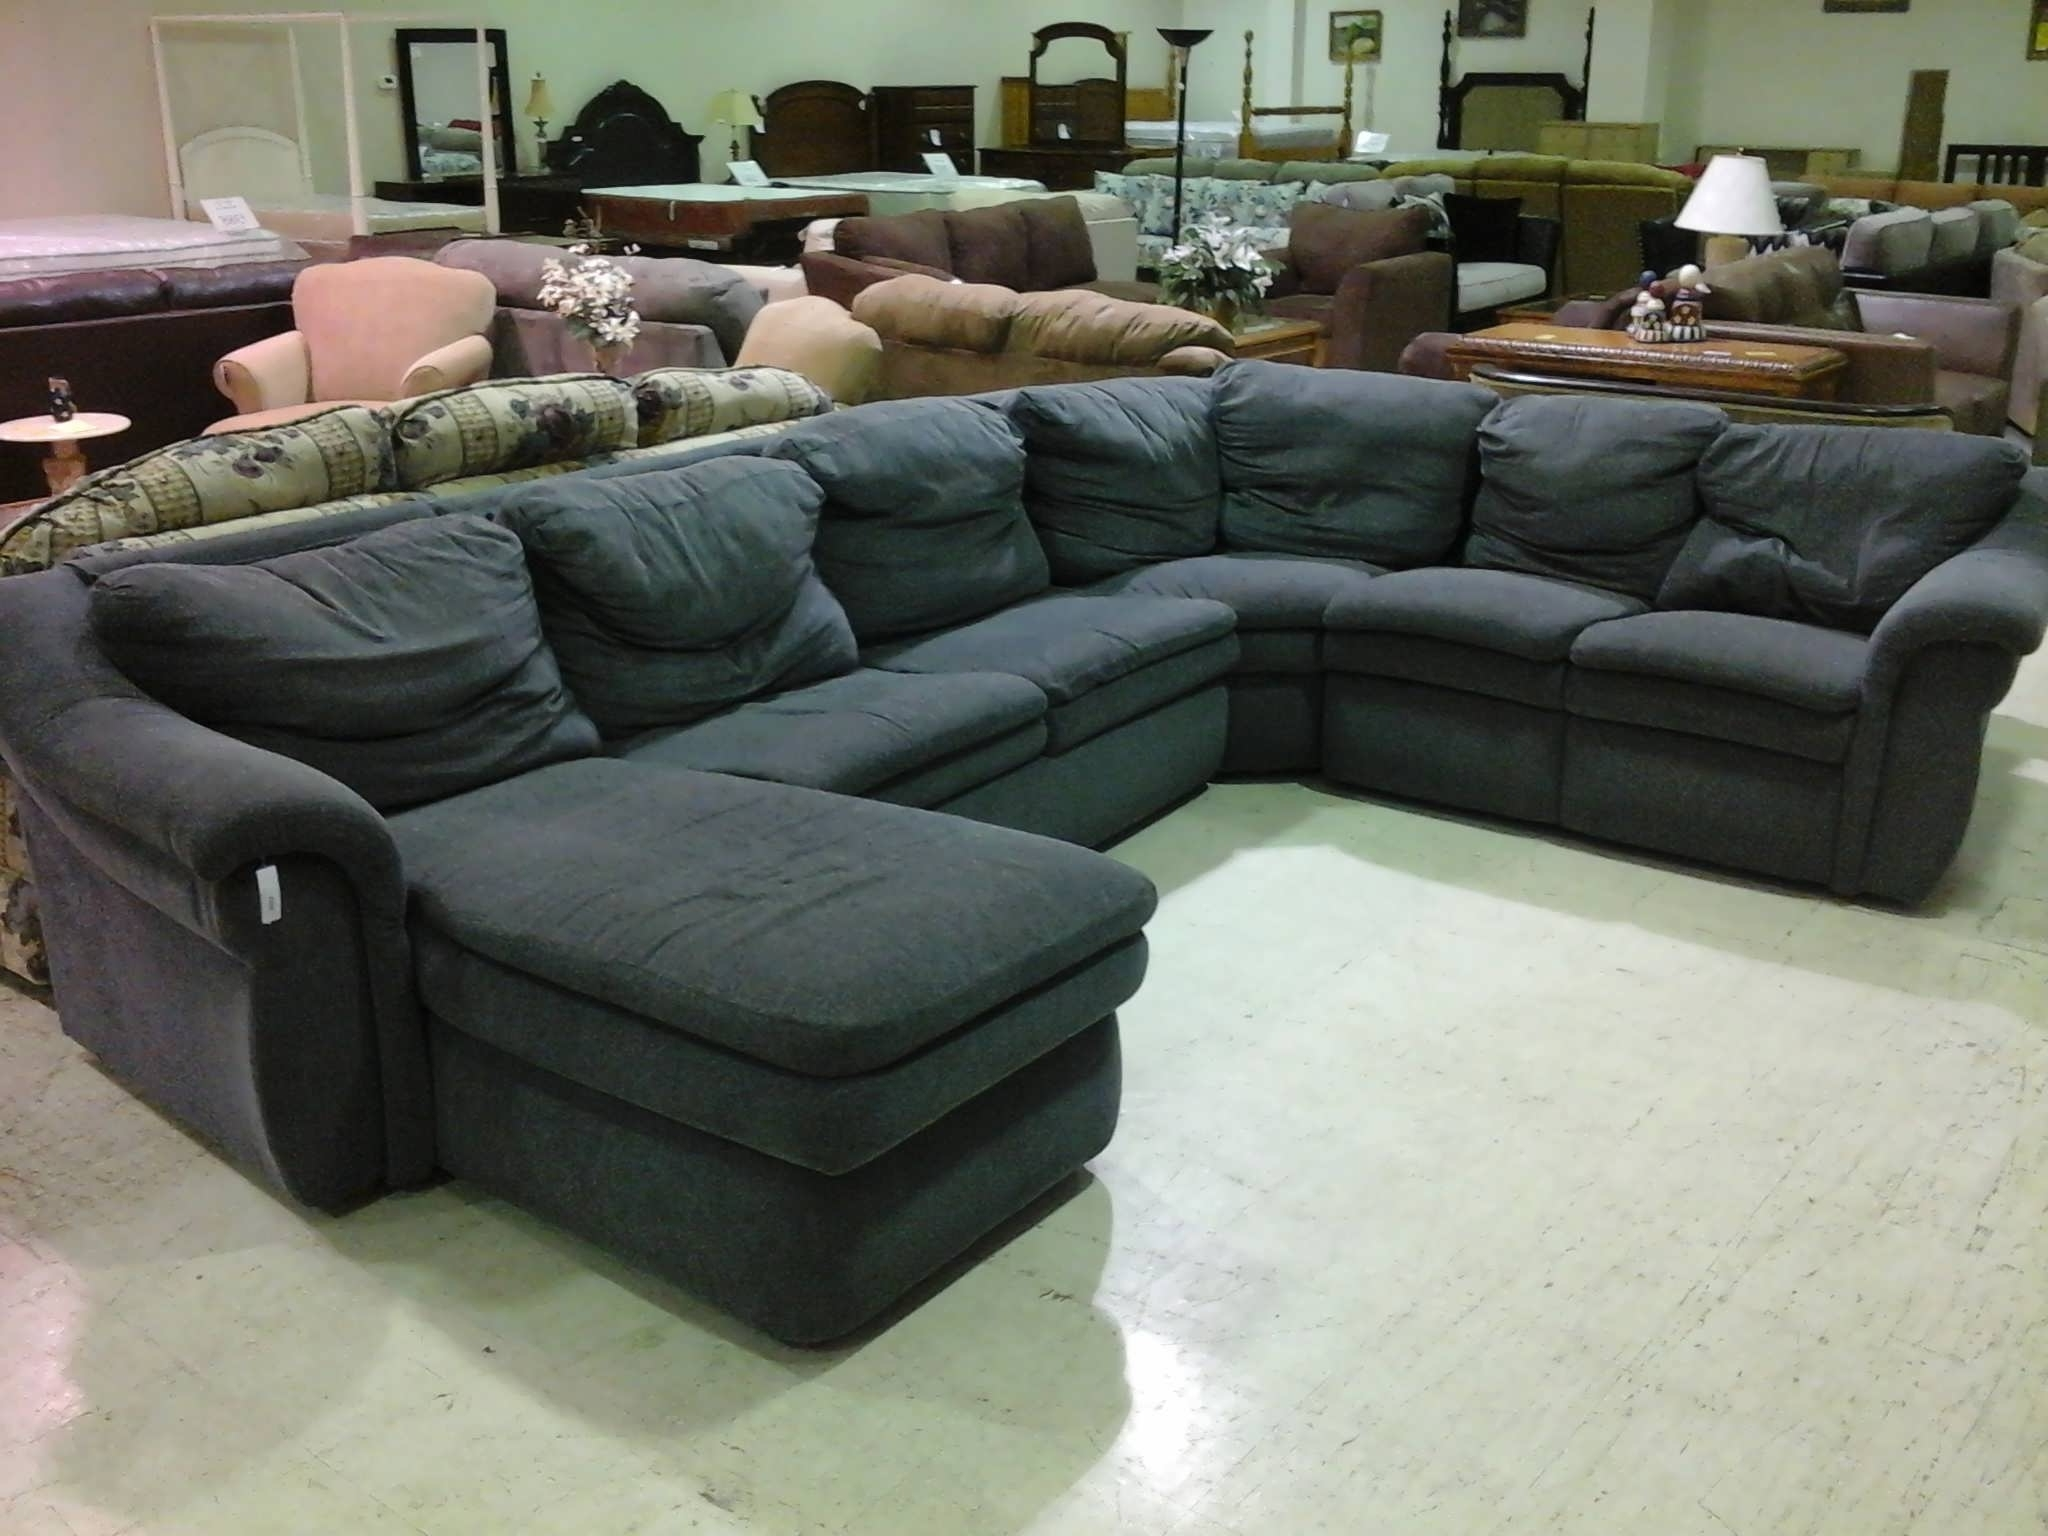 Trendy Sofa : Cheap Sectionals Small Sectional Sofa With Chaise L Shaped In Sectional Sofas With Recliner And Chaise Lounge (View 7 of 15)